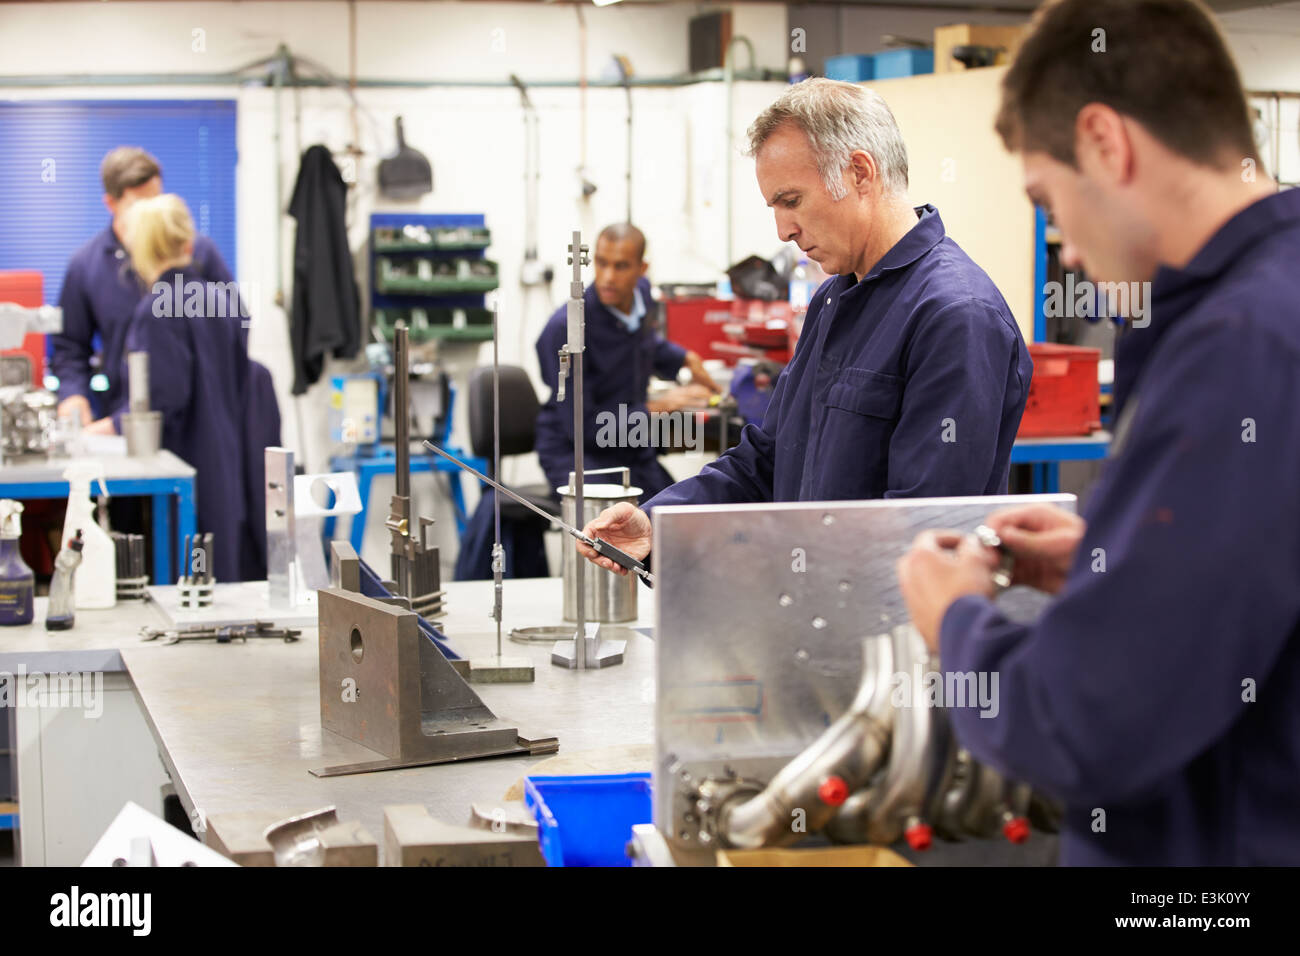 Busy Interior Of Engineering Workshop - Stock Image